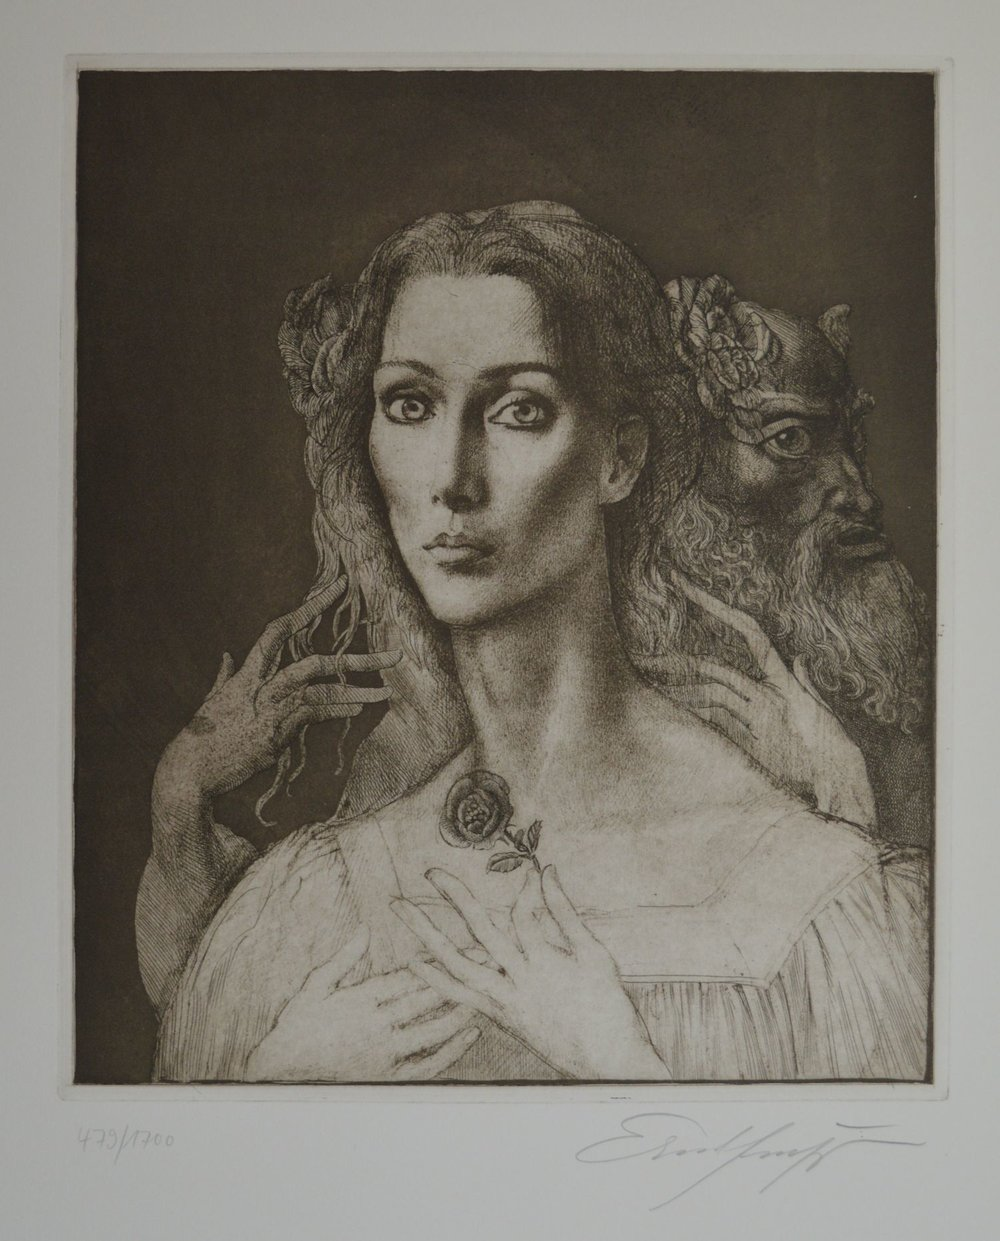 "Ernst Fuchs (1930 - 2015):  Pan verführt eine junge Frau   Etching and aquatint, ca. 1975; edition of 1700. Image size 12-1/8"" x 14-3/8""; sheet size 19"" x 24-5/8"". Numbered 479/1700 and signed in pencil by the artist. A nuanced impression, all tones and fine details beautifully printed. Fine.   $825"